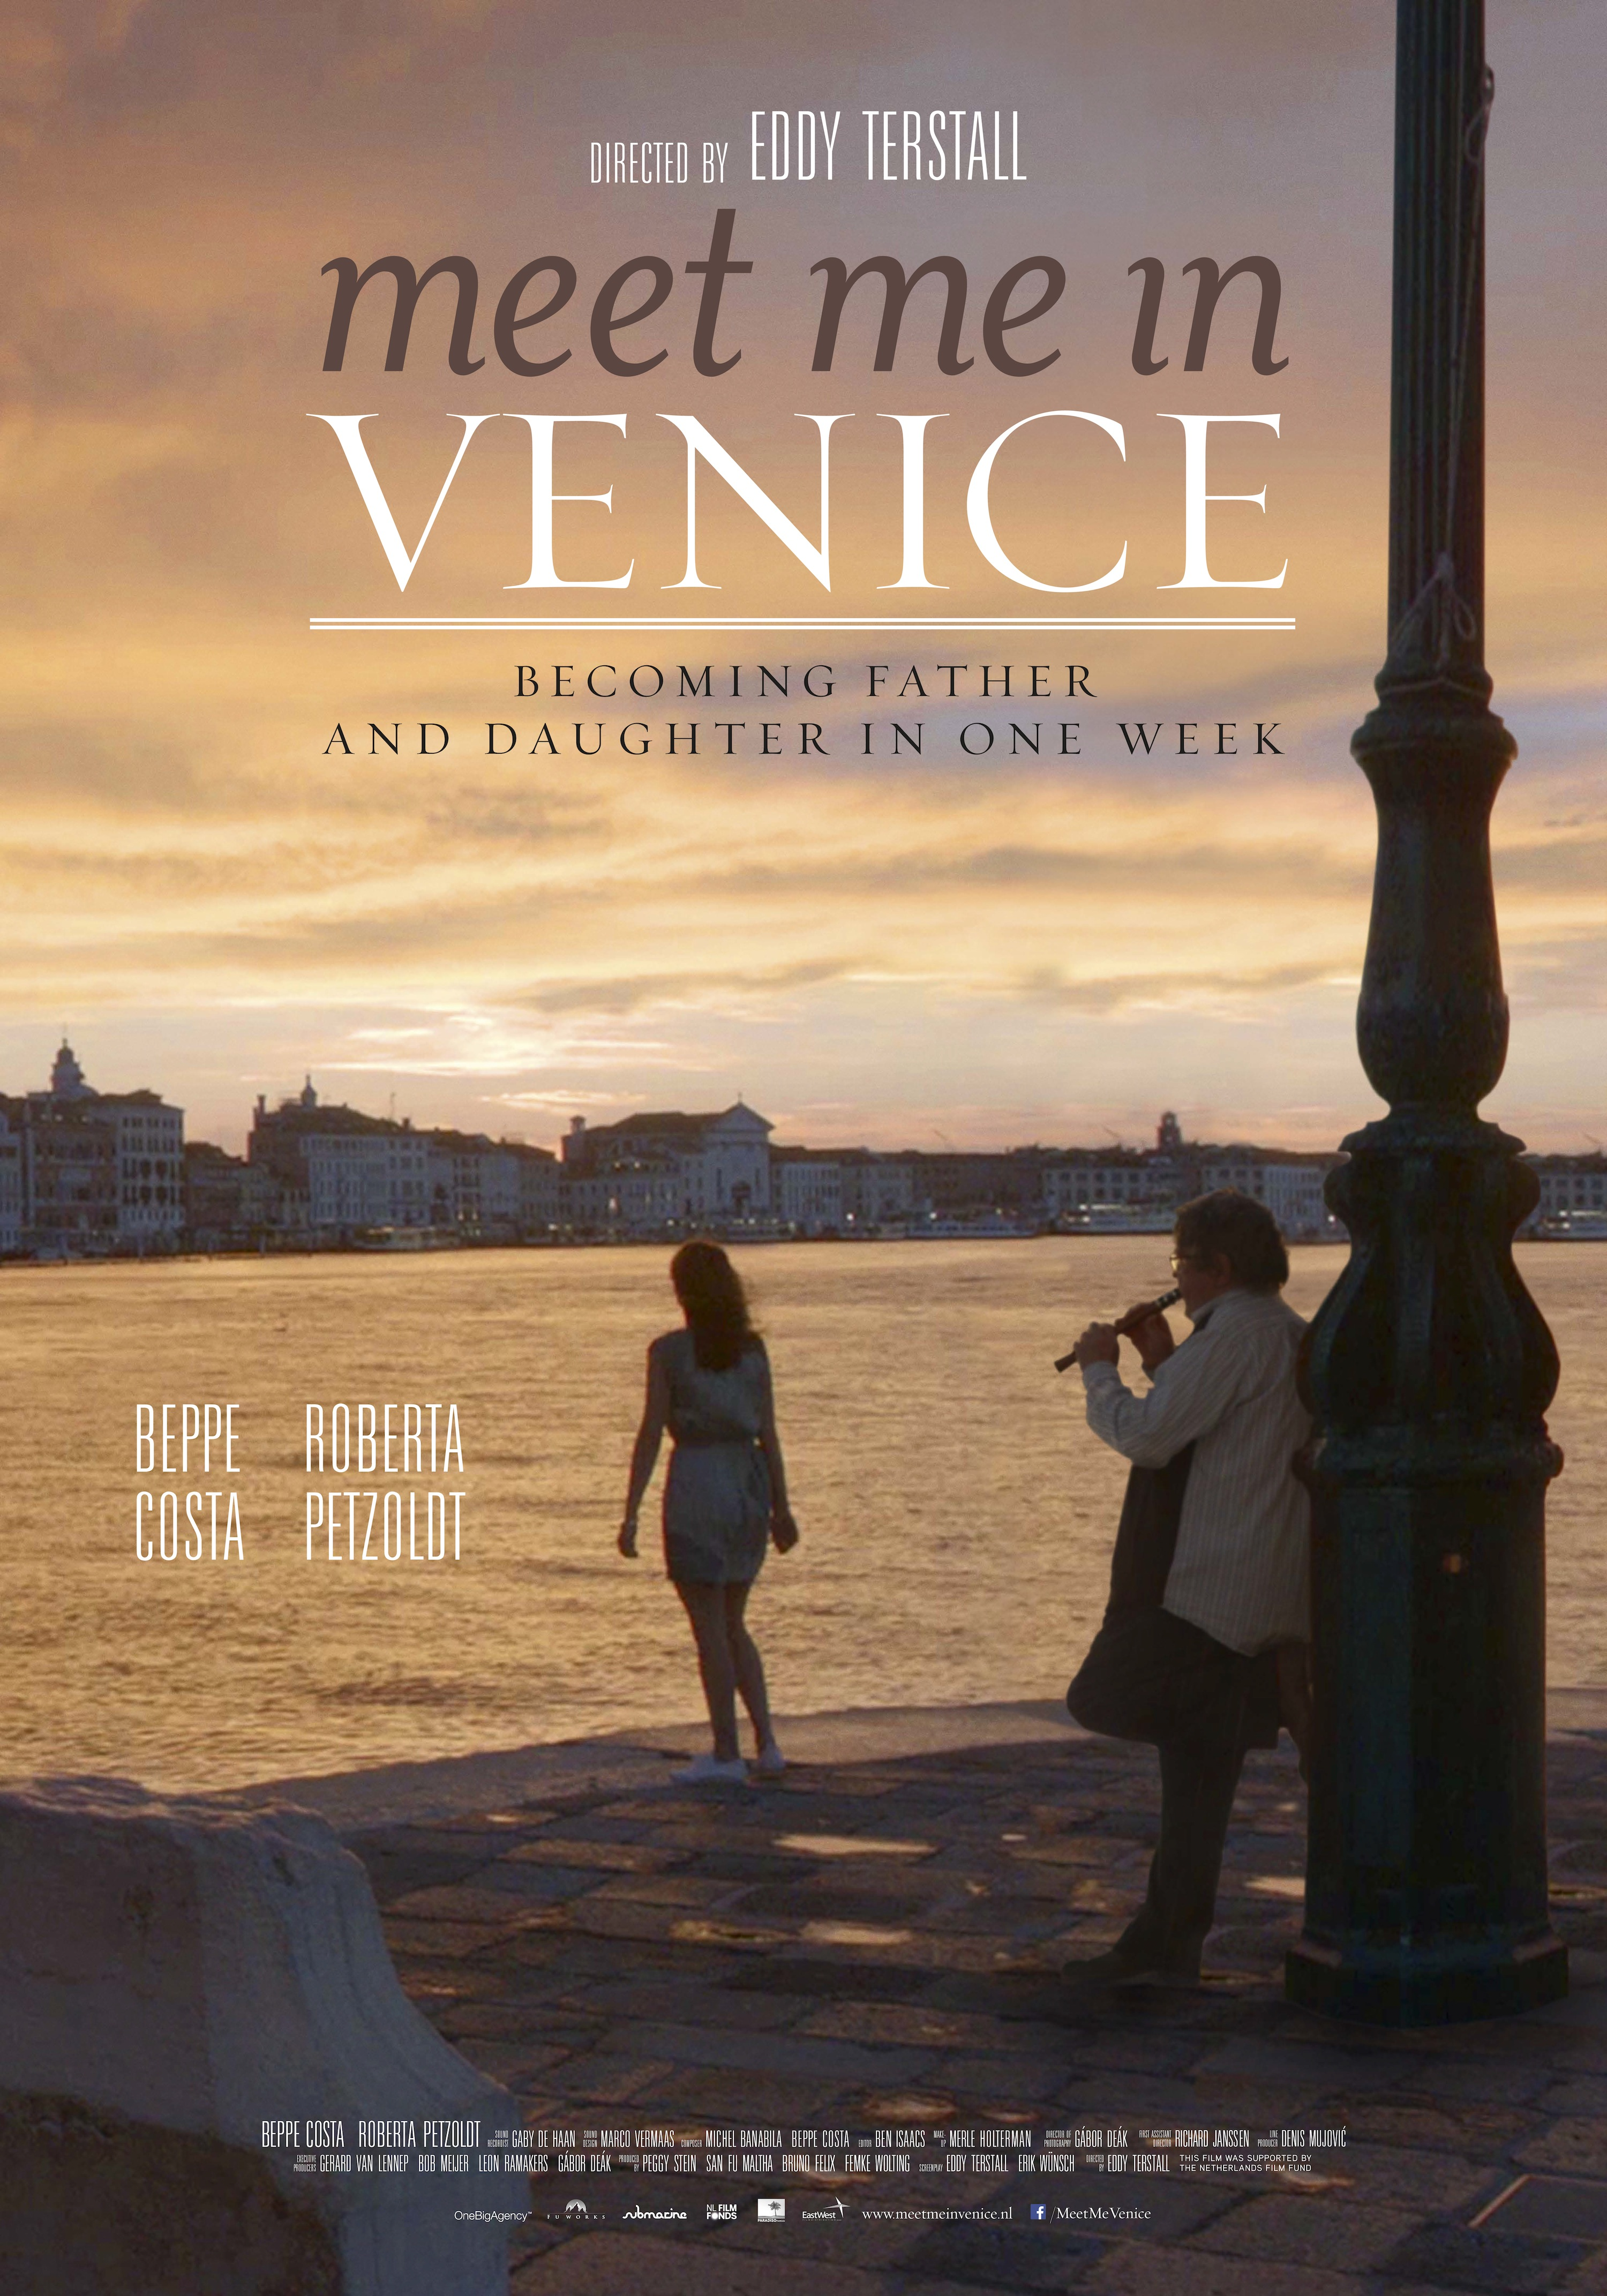 Meet Me In Venice - Beppe Costa & Michel Banabila